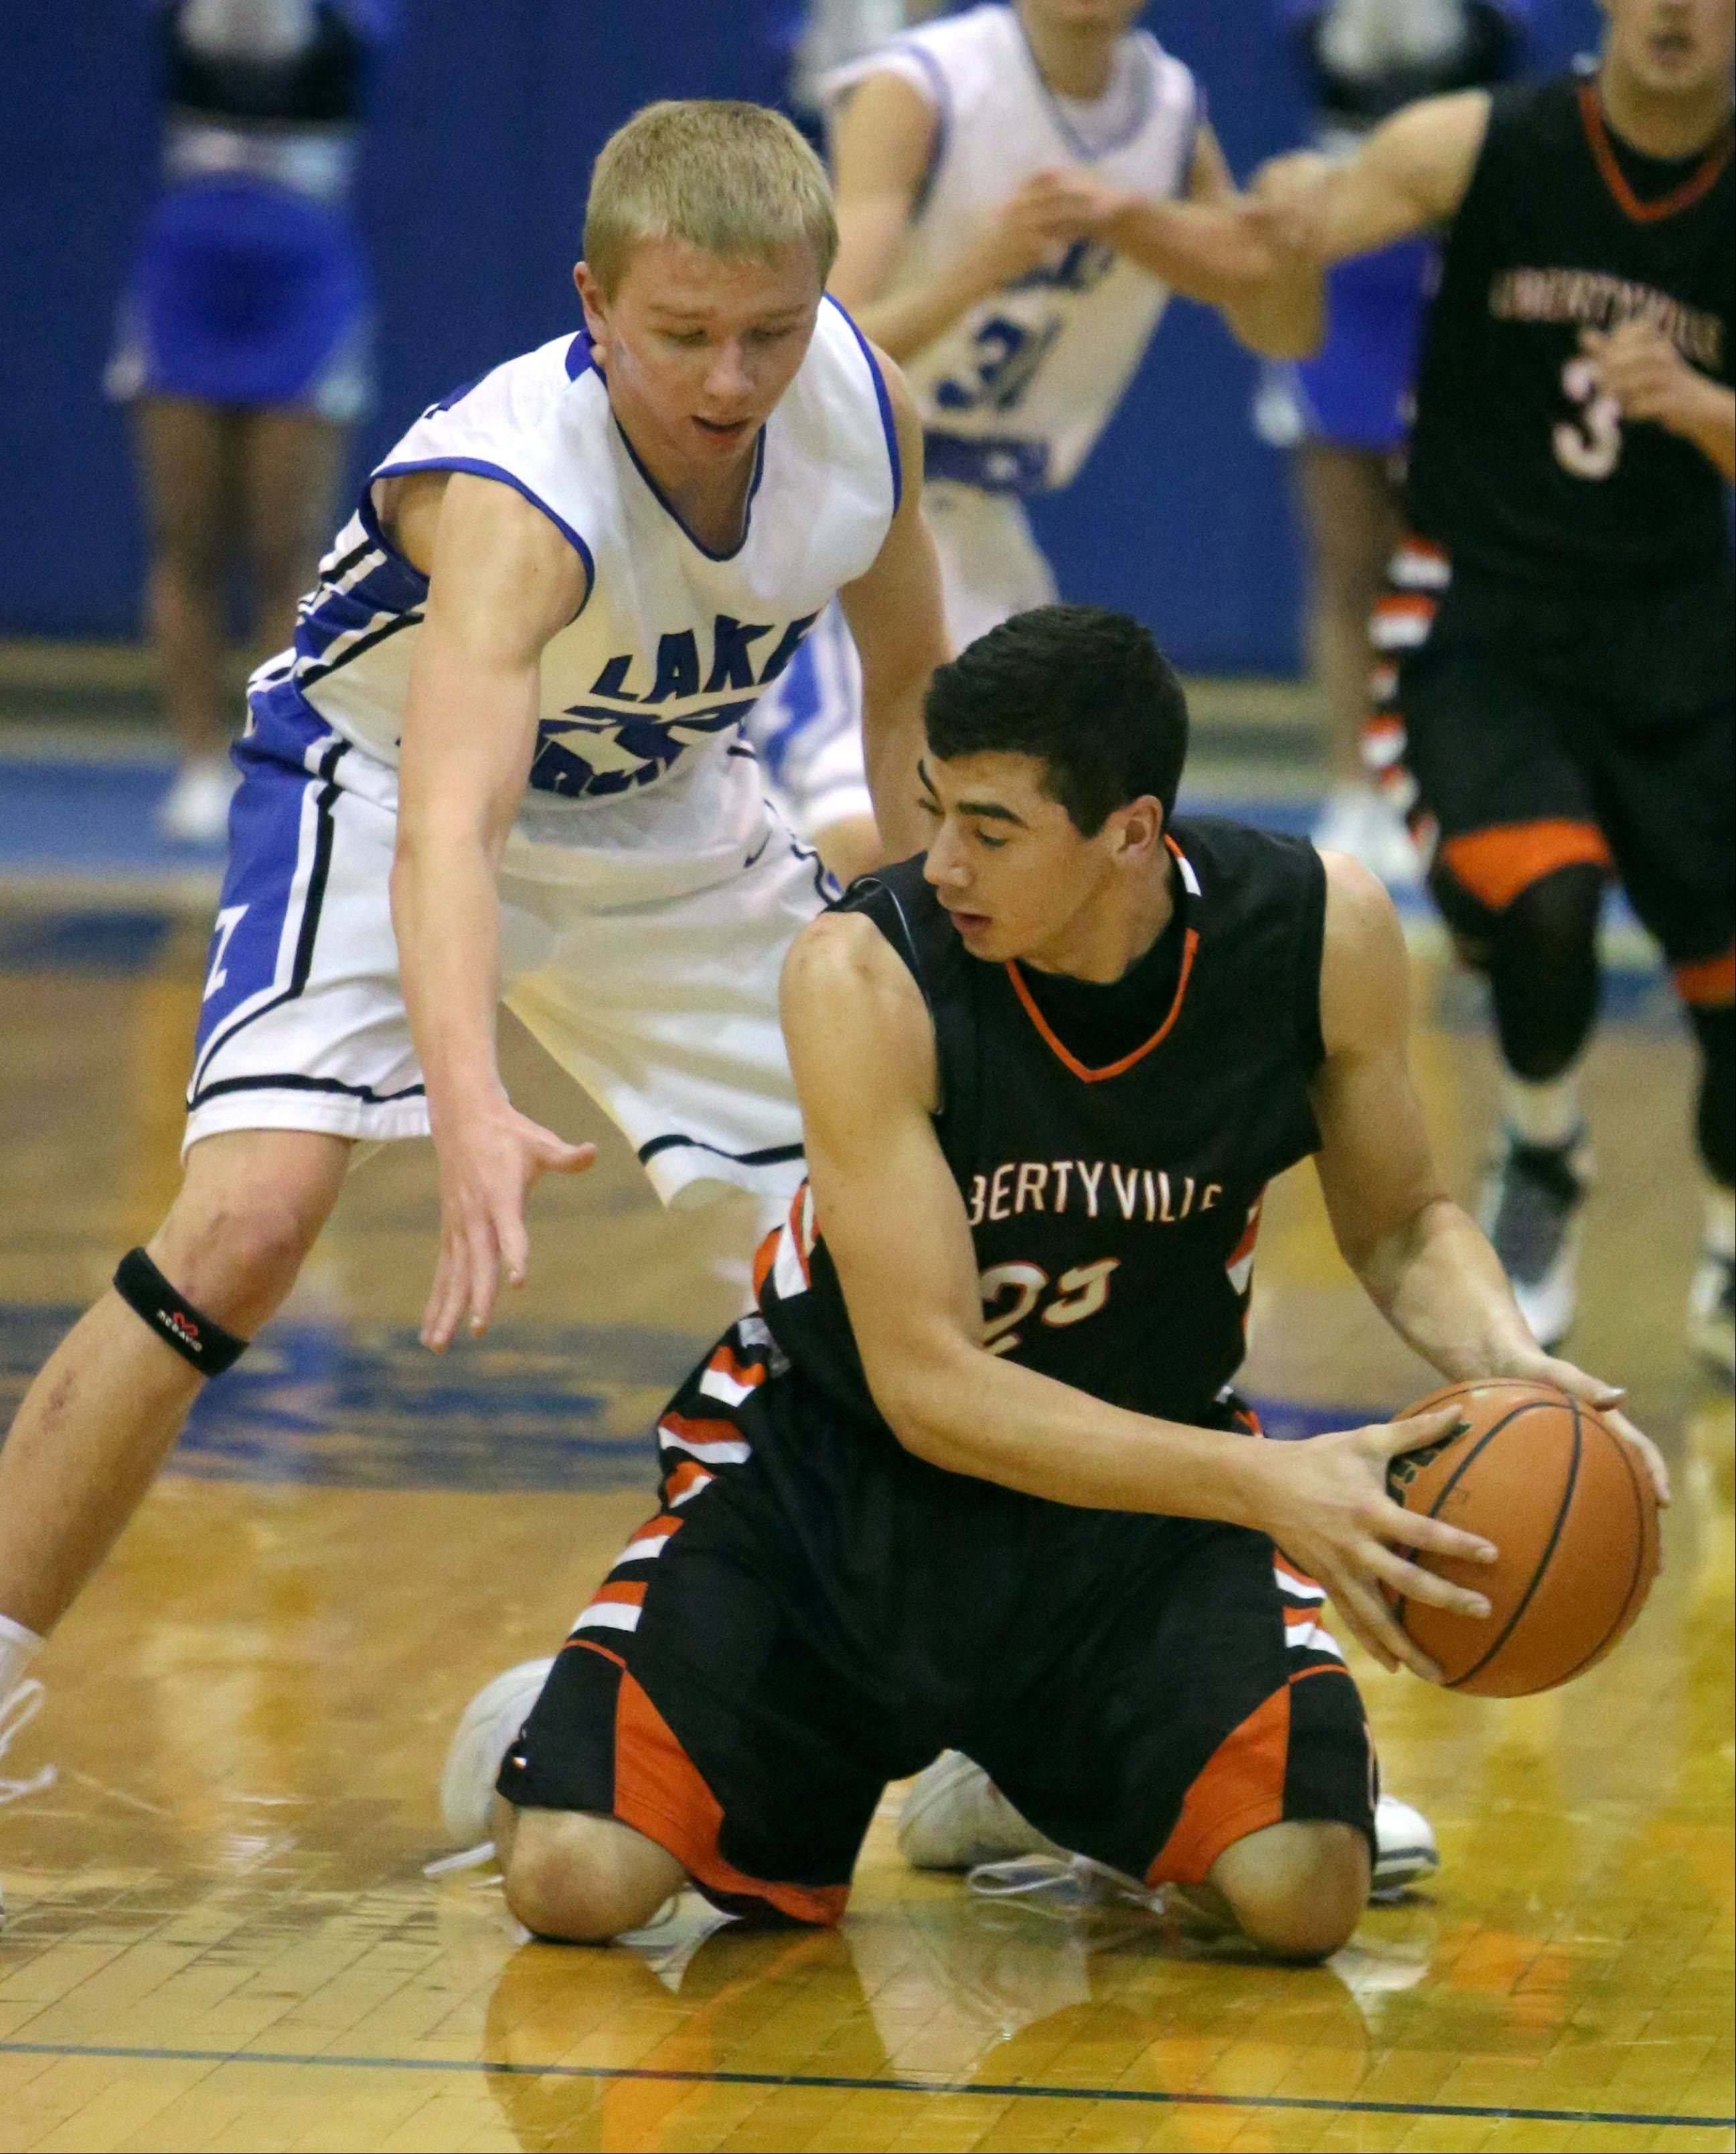 Lake Zurich's Brad Kruse, left, and Libertyville's Johnny Vernasco battle for a loose ball on Wednesday night at Lake Zurich High School.